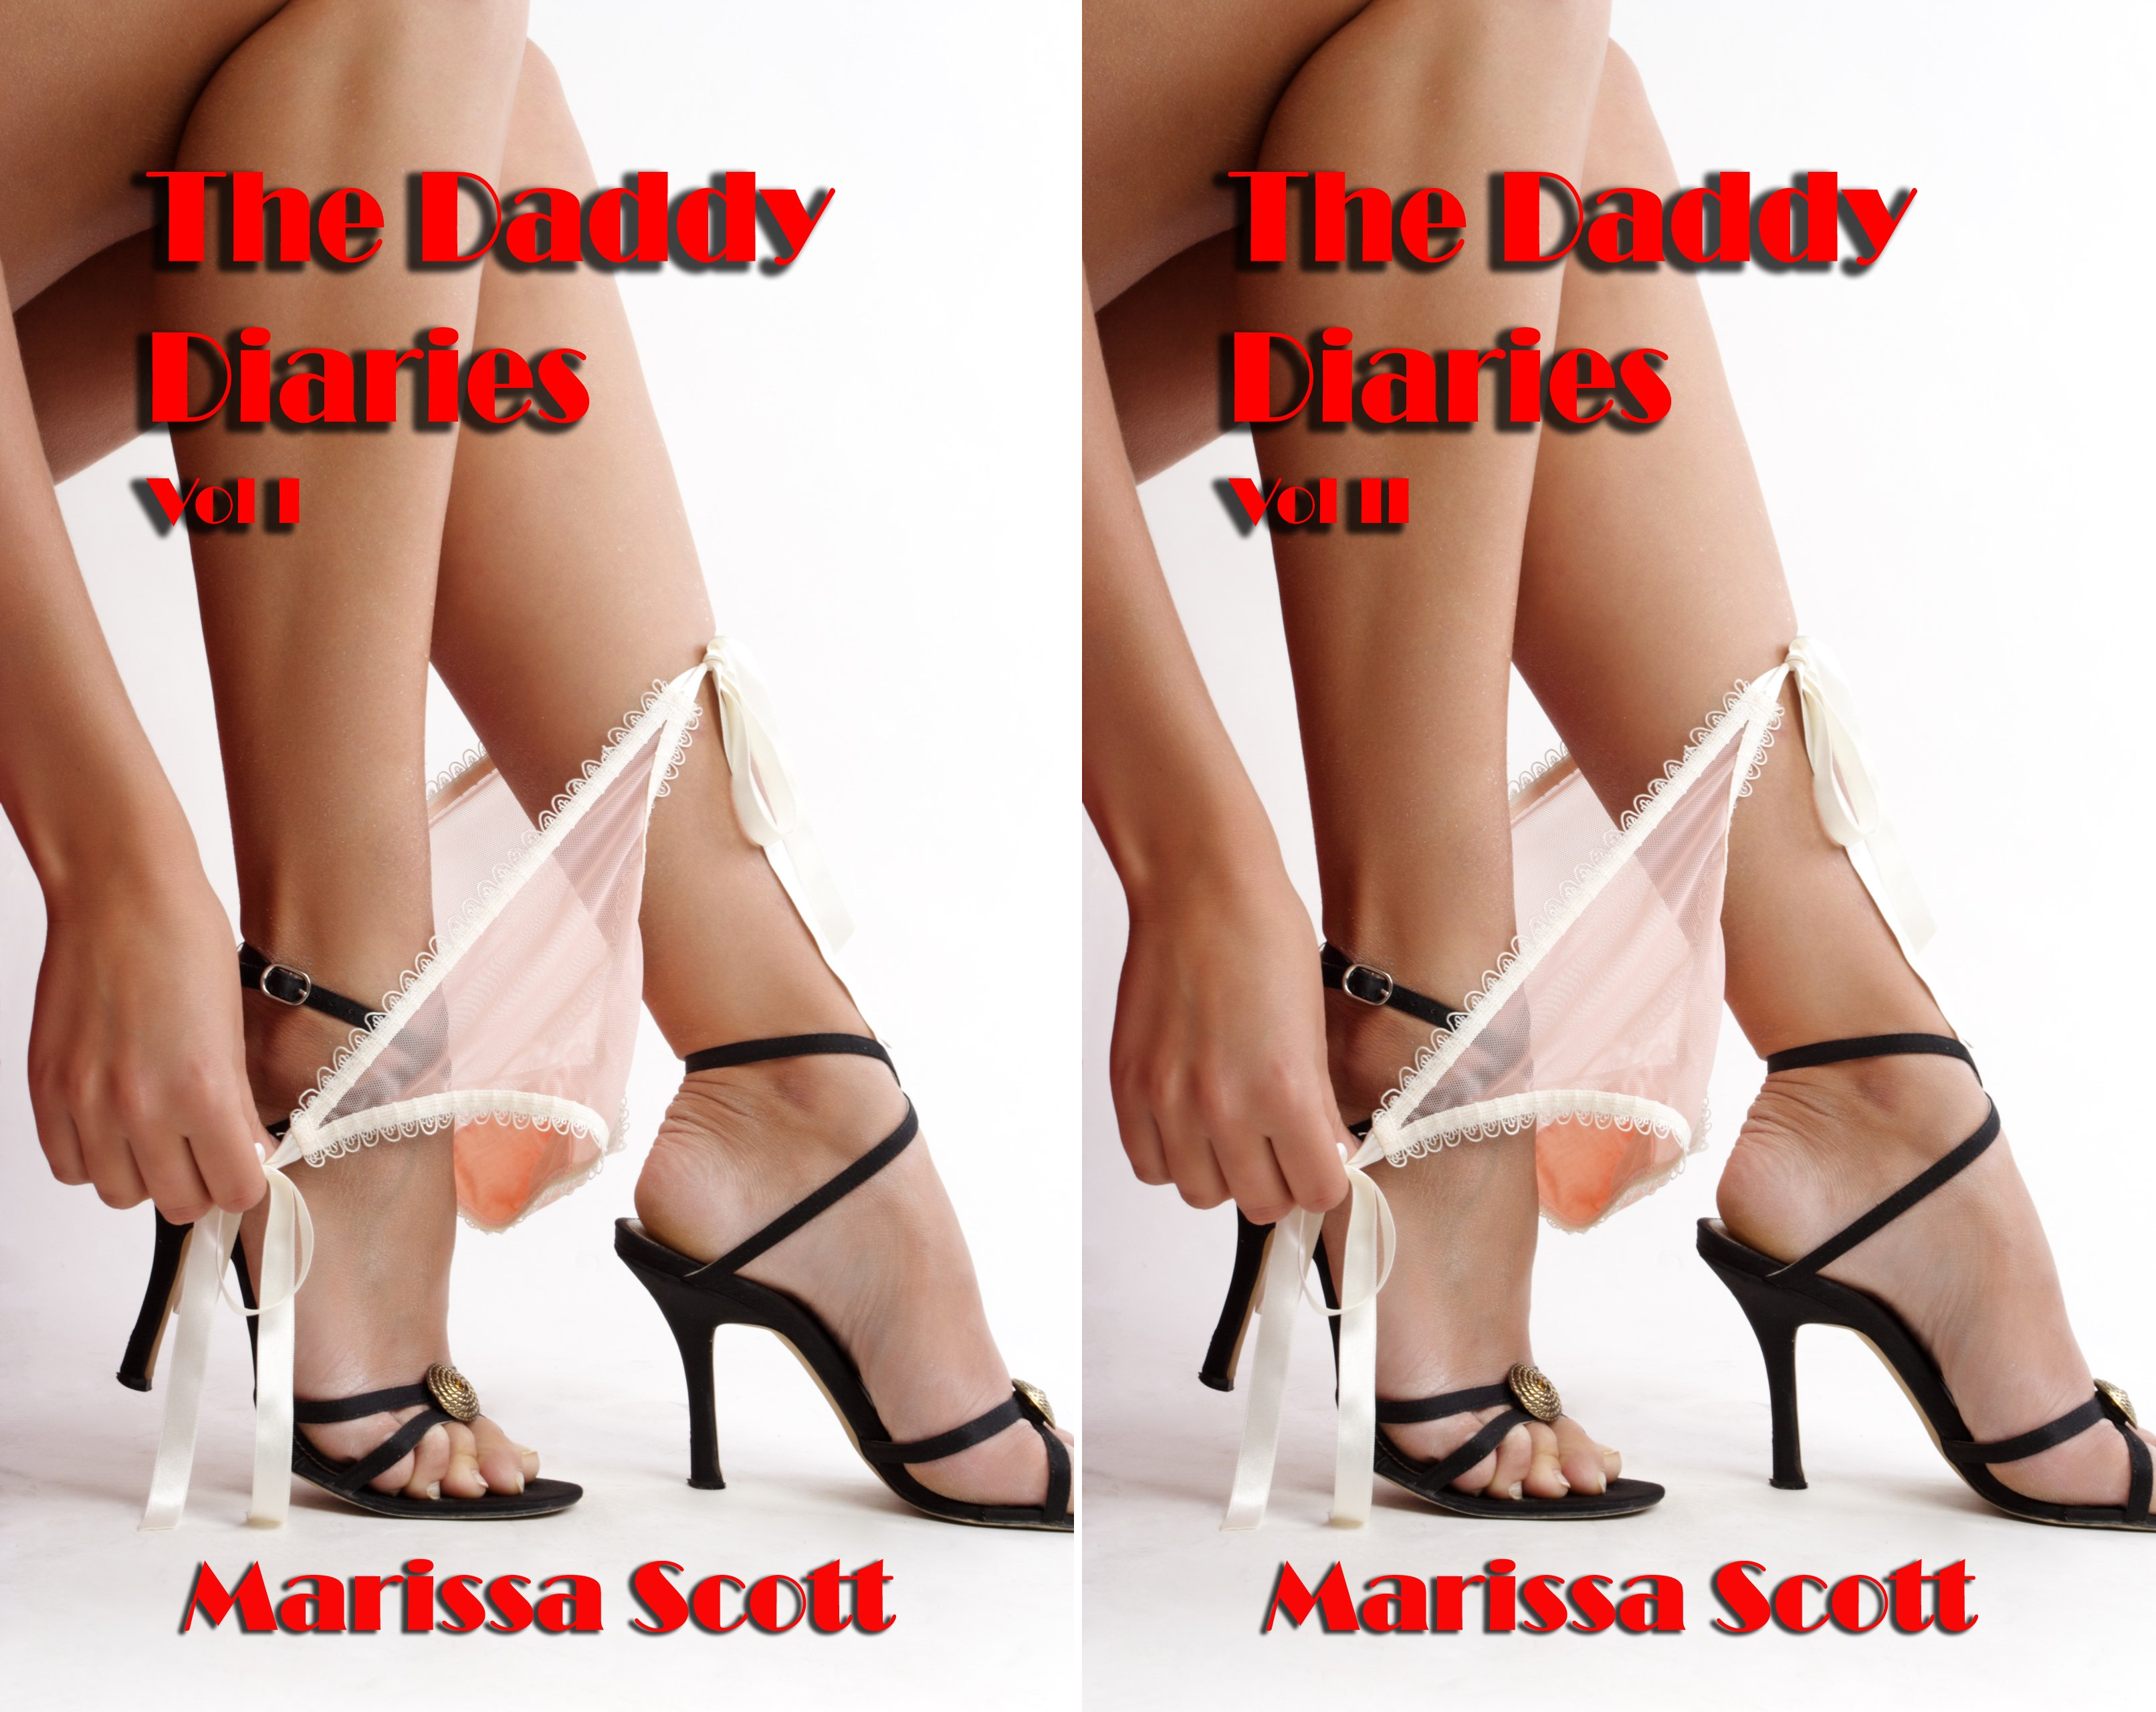 The Daddy Diaries (2 Book Series)